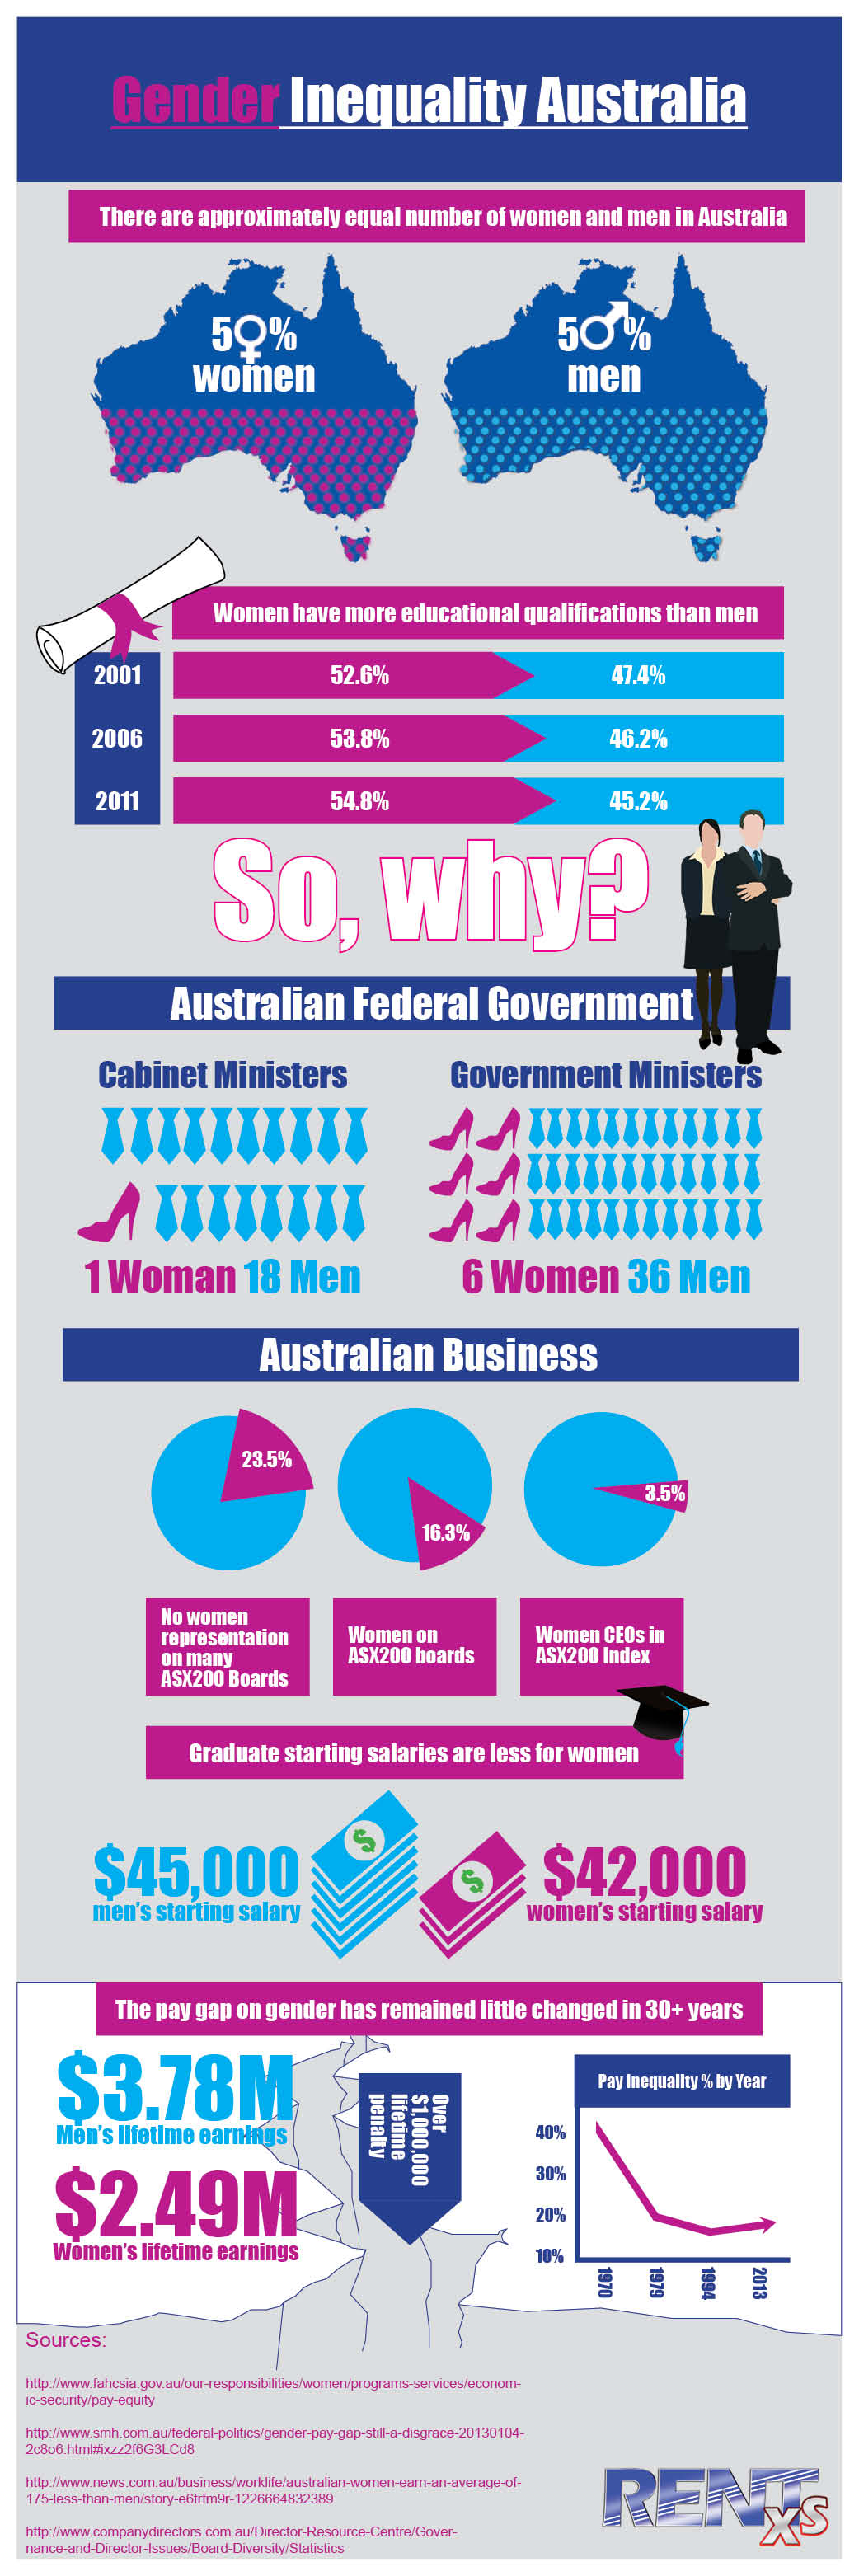 2014 infographic list glass ceiling in 2013